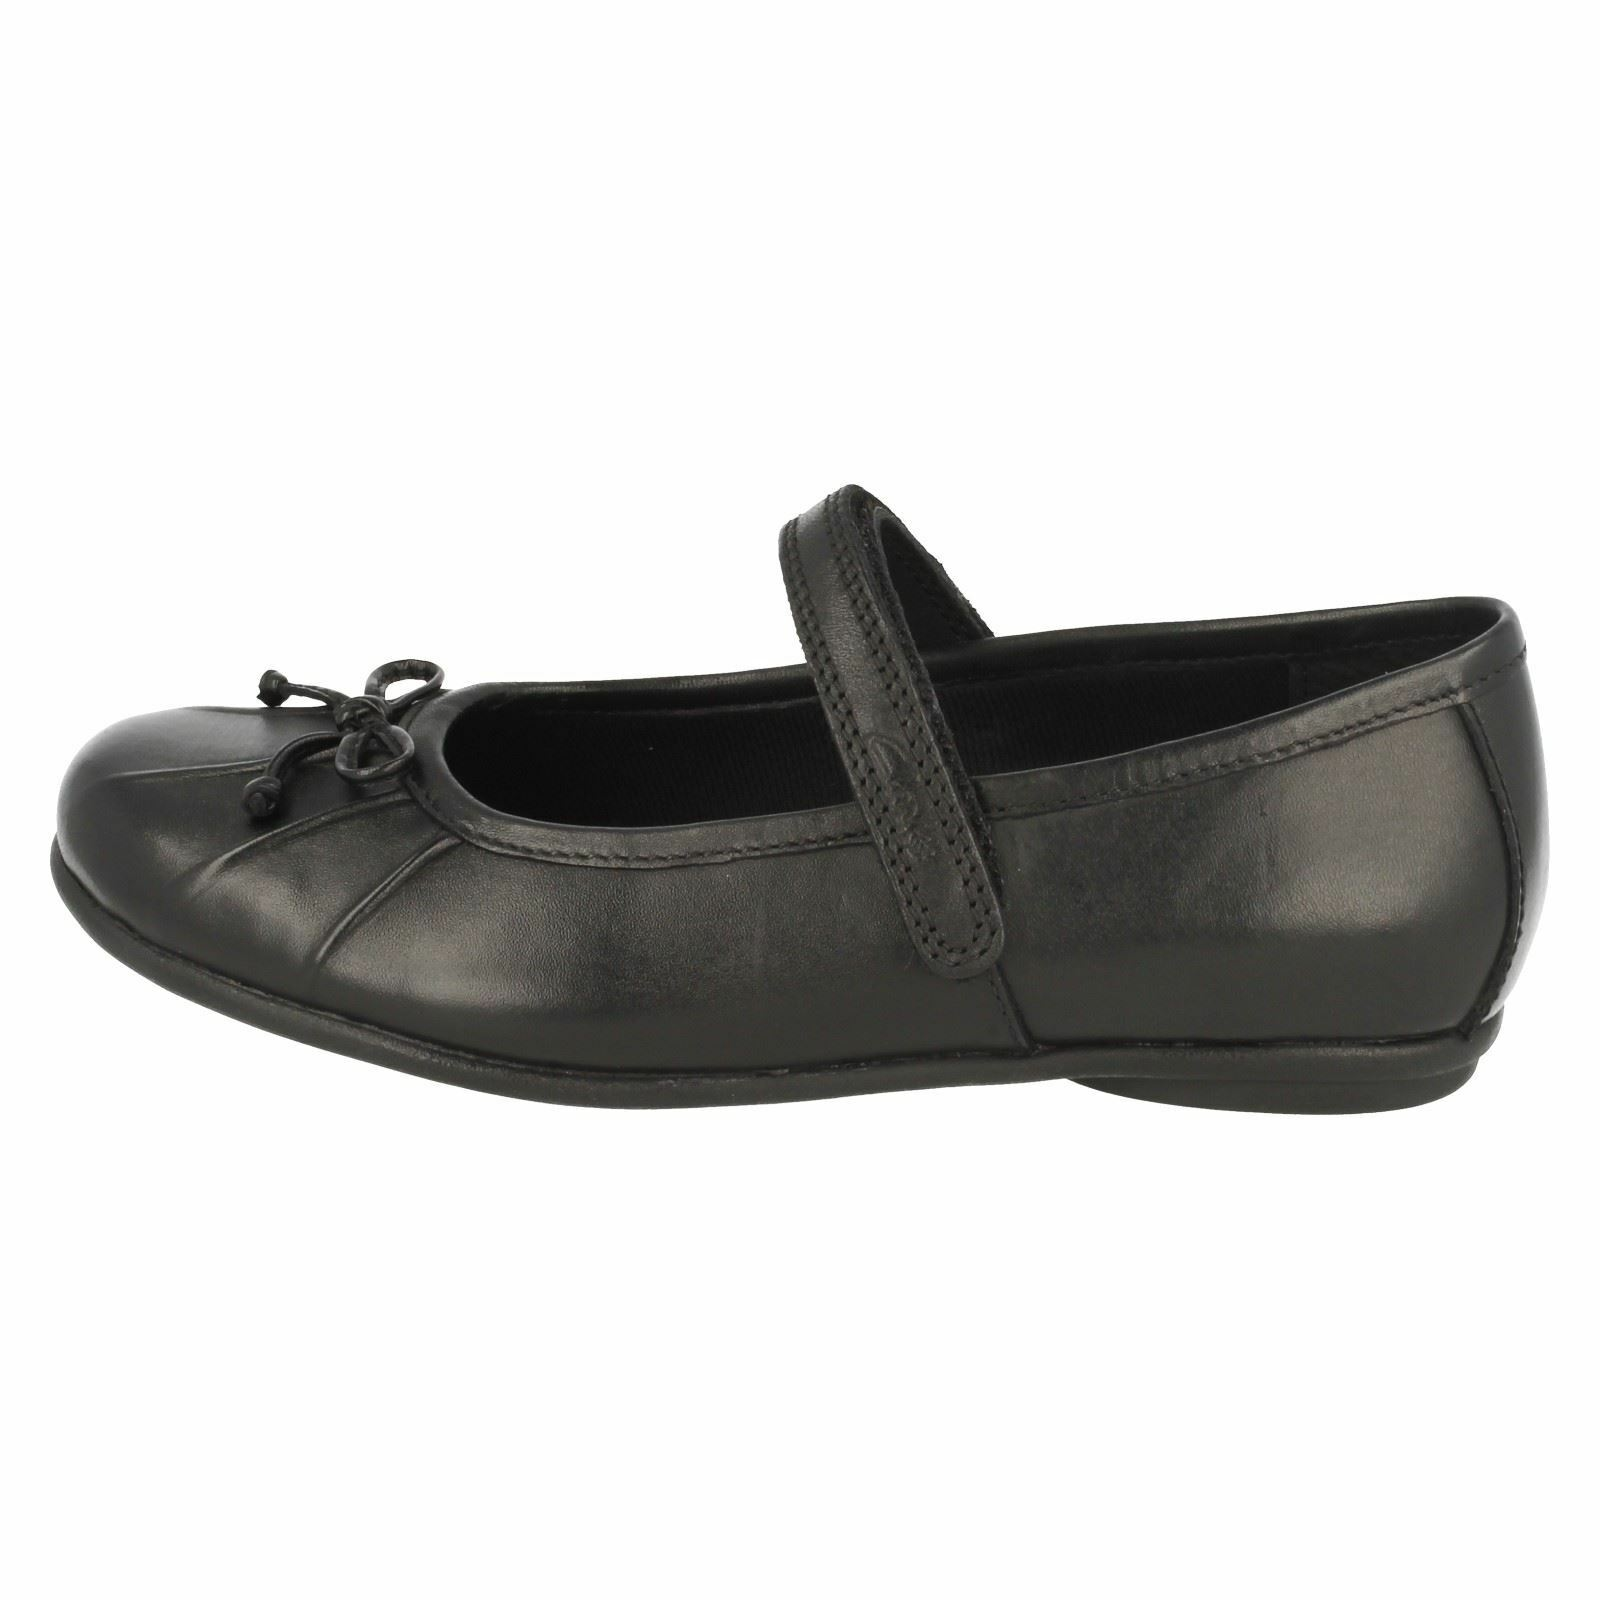 Girls Clarks Formal/School Shoes - Tasha Ally 1